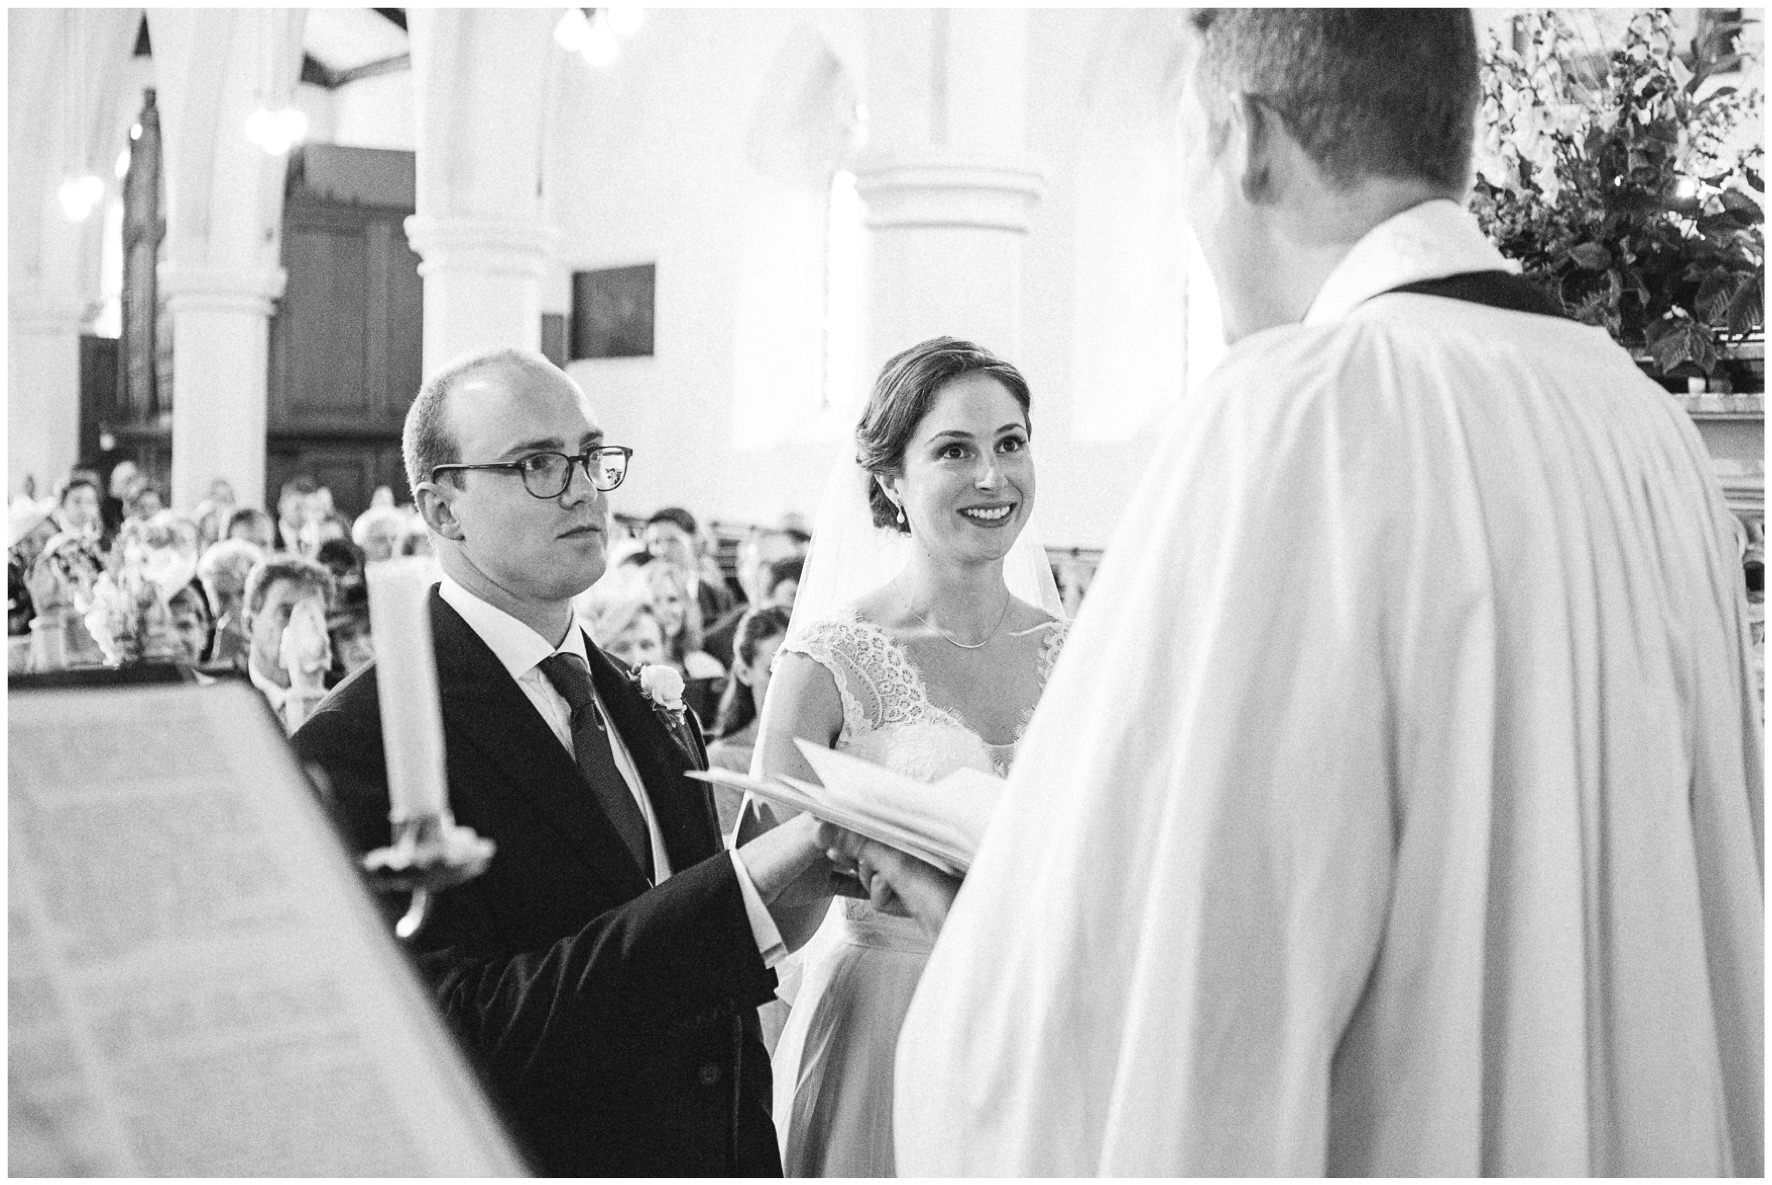 Lucy Davenport Photography, Cornwell Manor, wedding venue, Oxfordshire, Cotswold wedding, church wedding, church ceremony, bride and groom